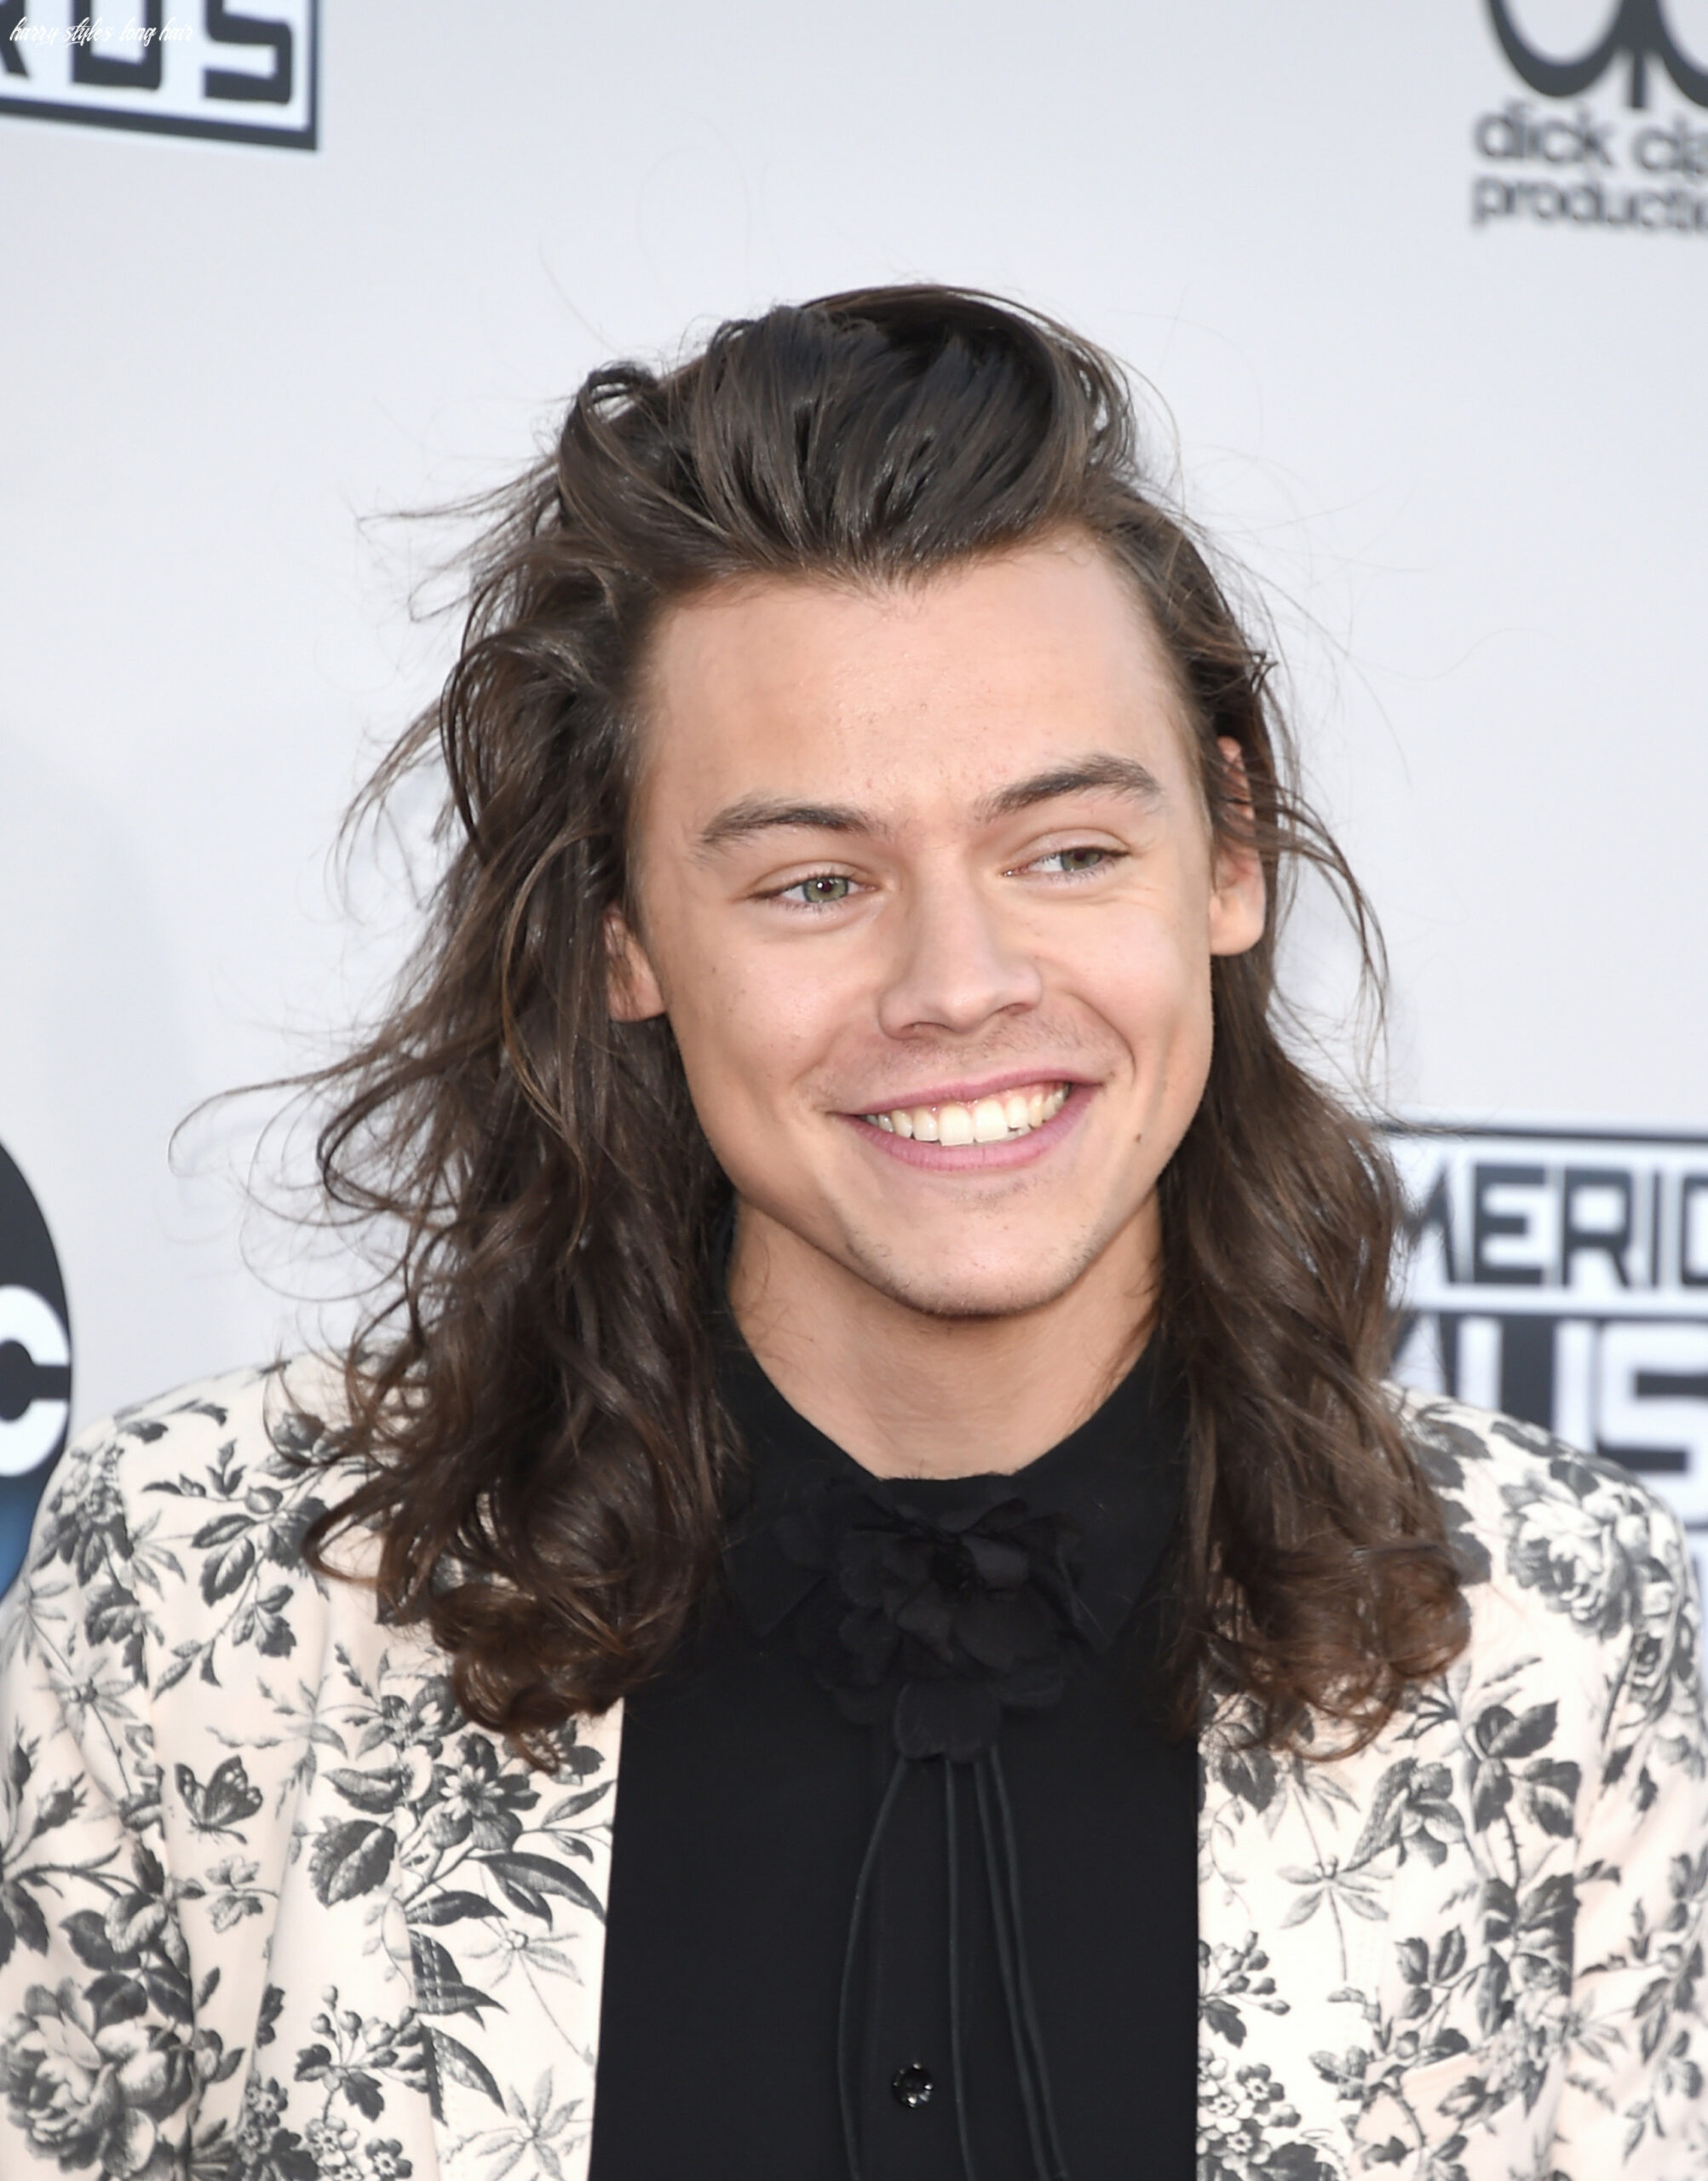 What harry styles looks like with short hair vs